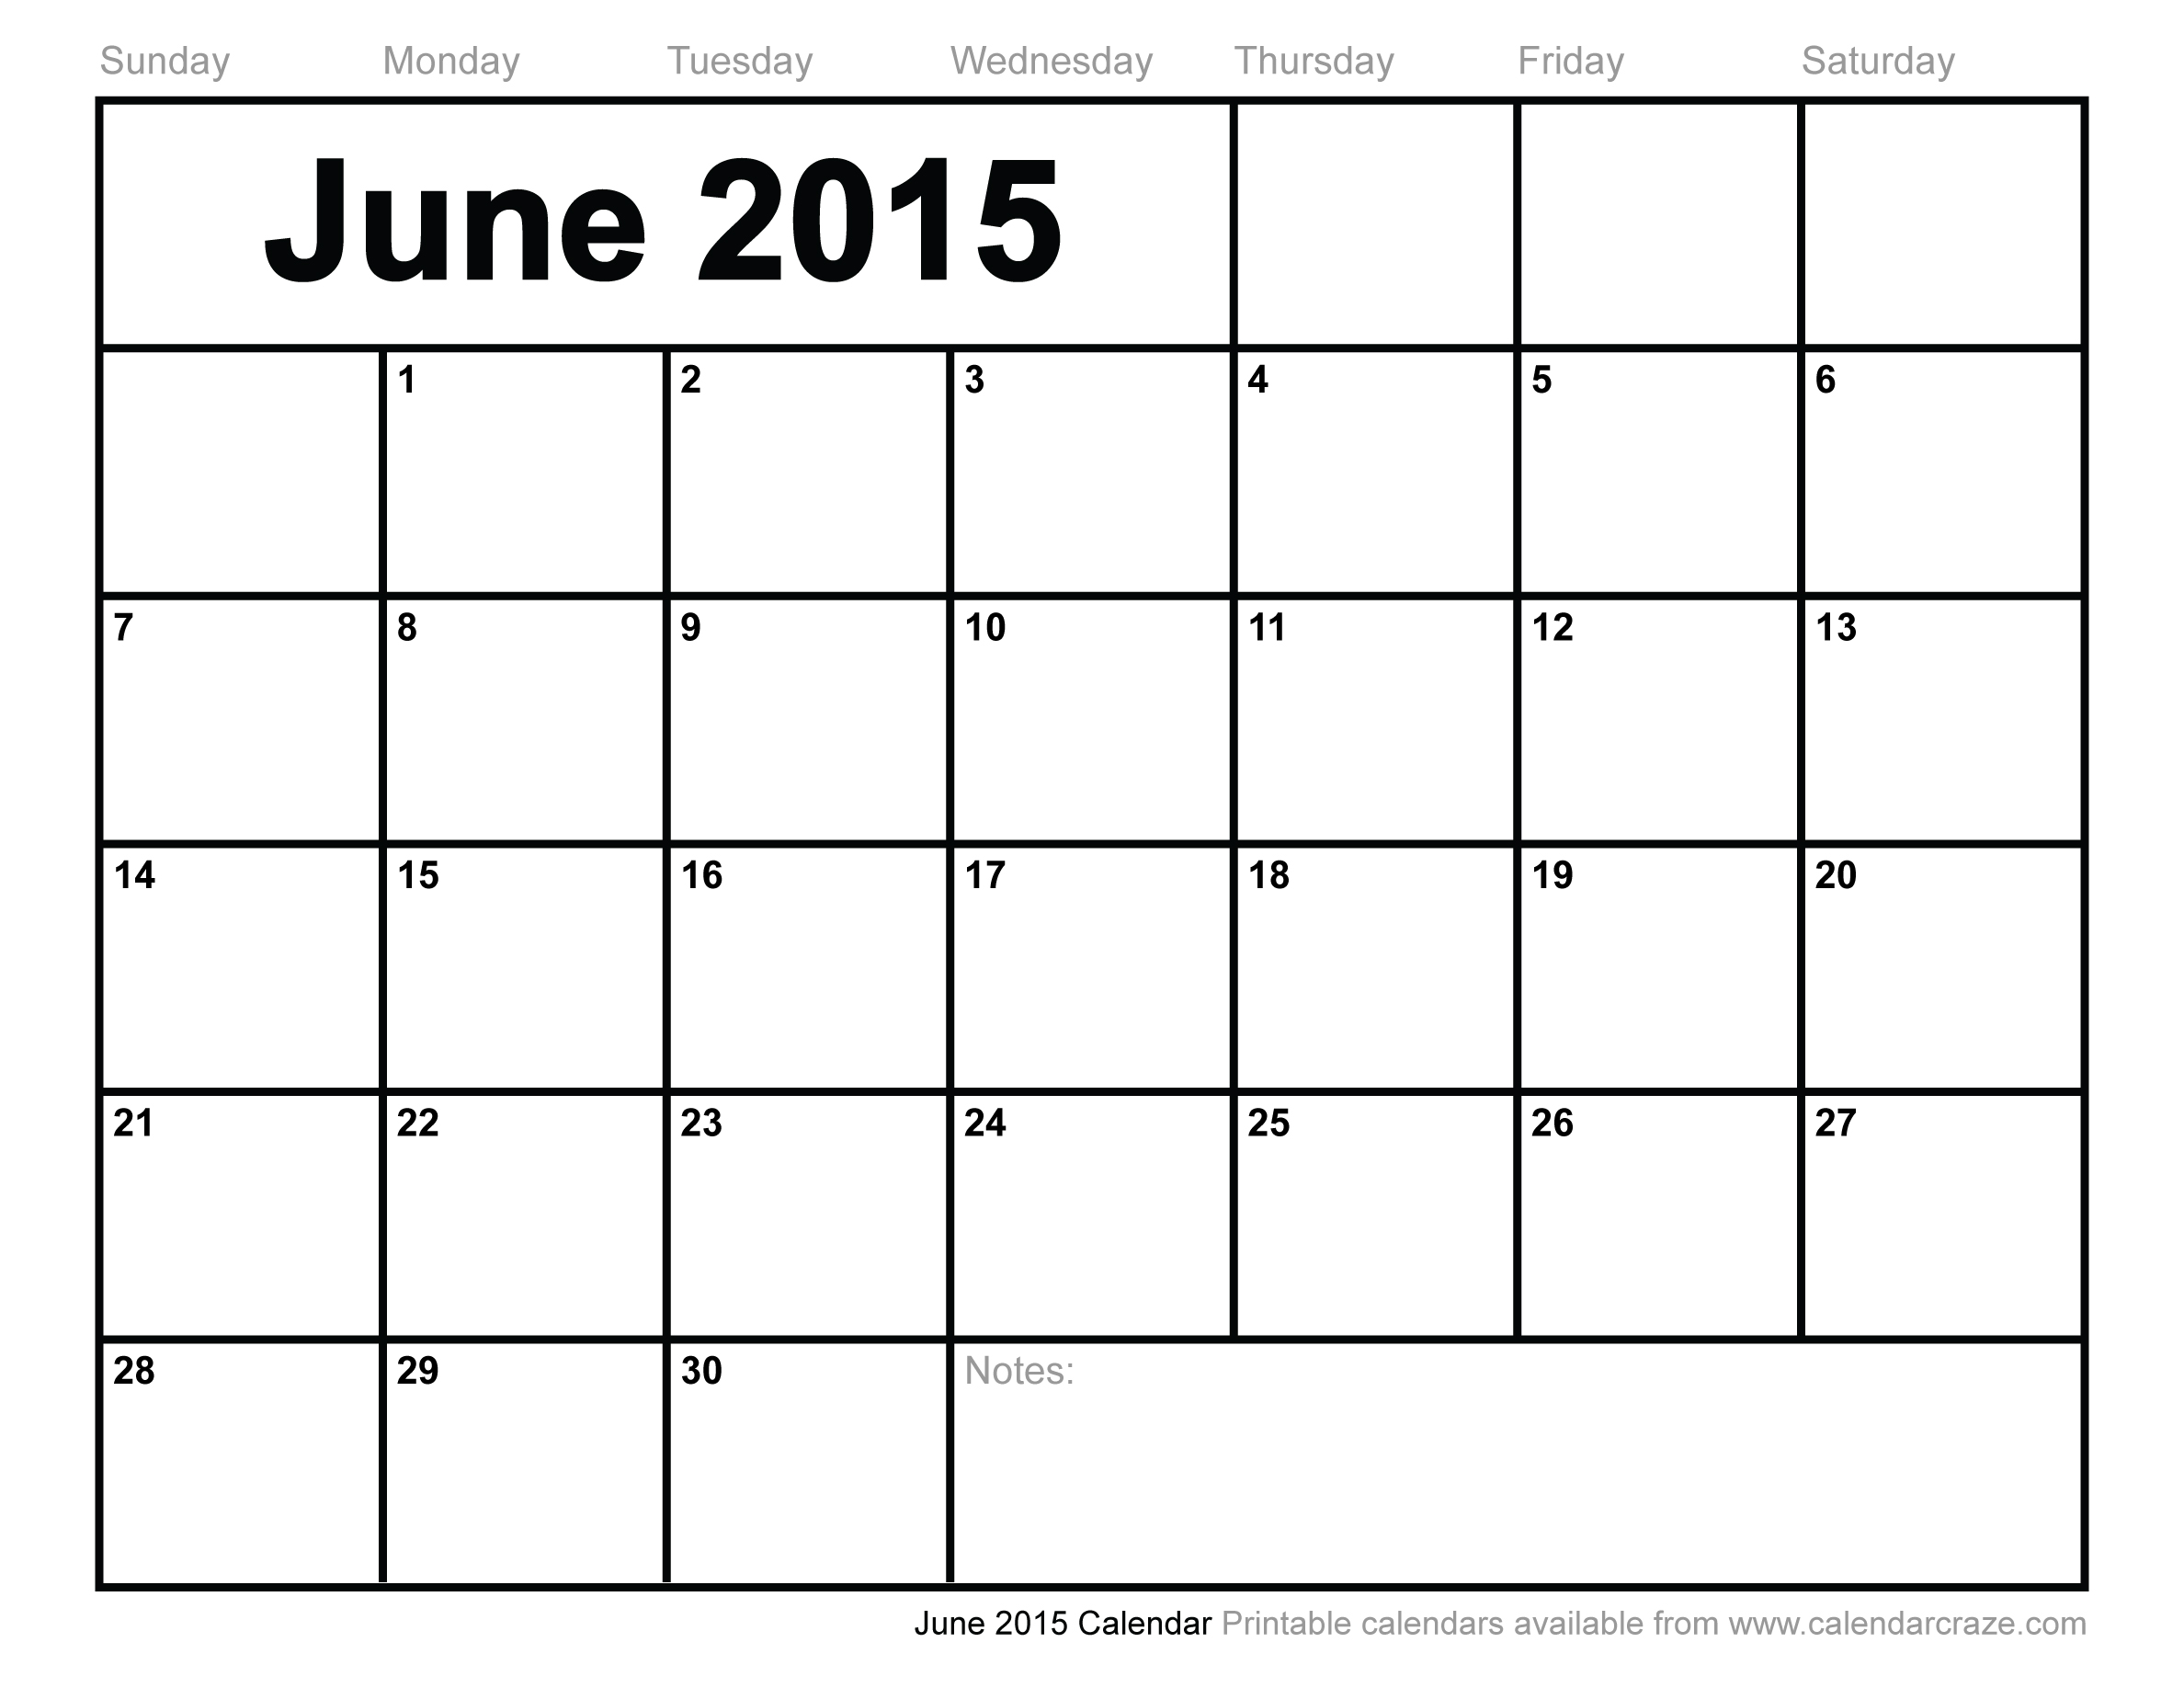 March 2015 Calendar Printable June